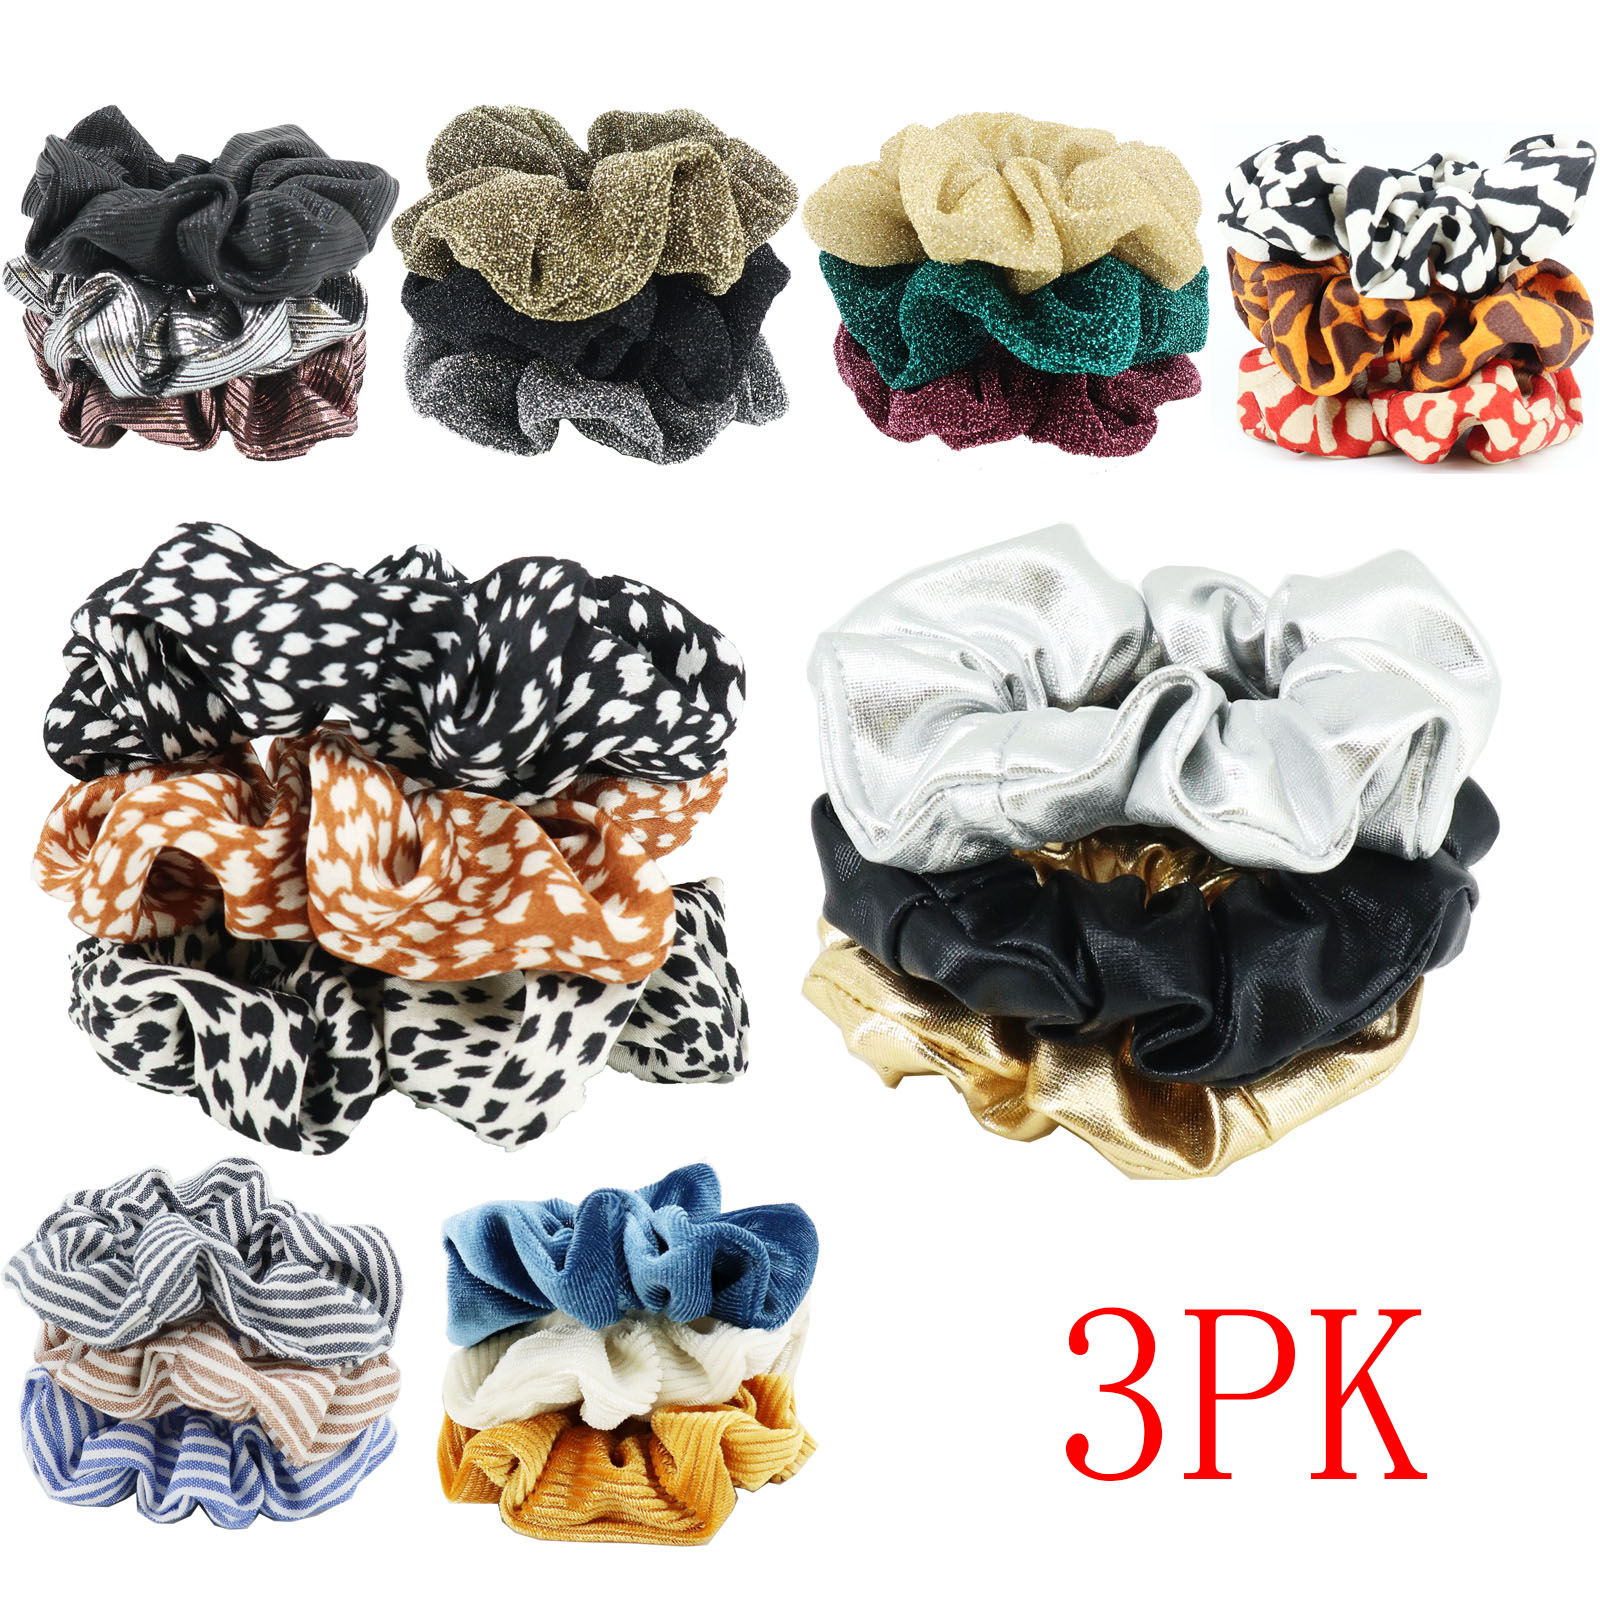 3PK Women Silky Print Small Scruchies Sets Hair Tie Girl Ponytail Holder Elastic Rubber Band Women Fashion Hair Accessories